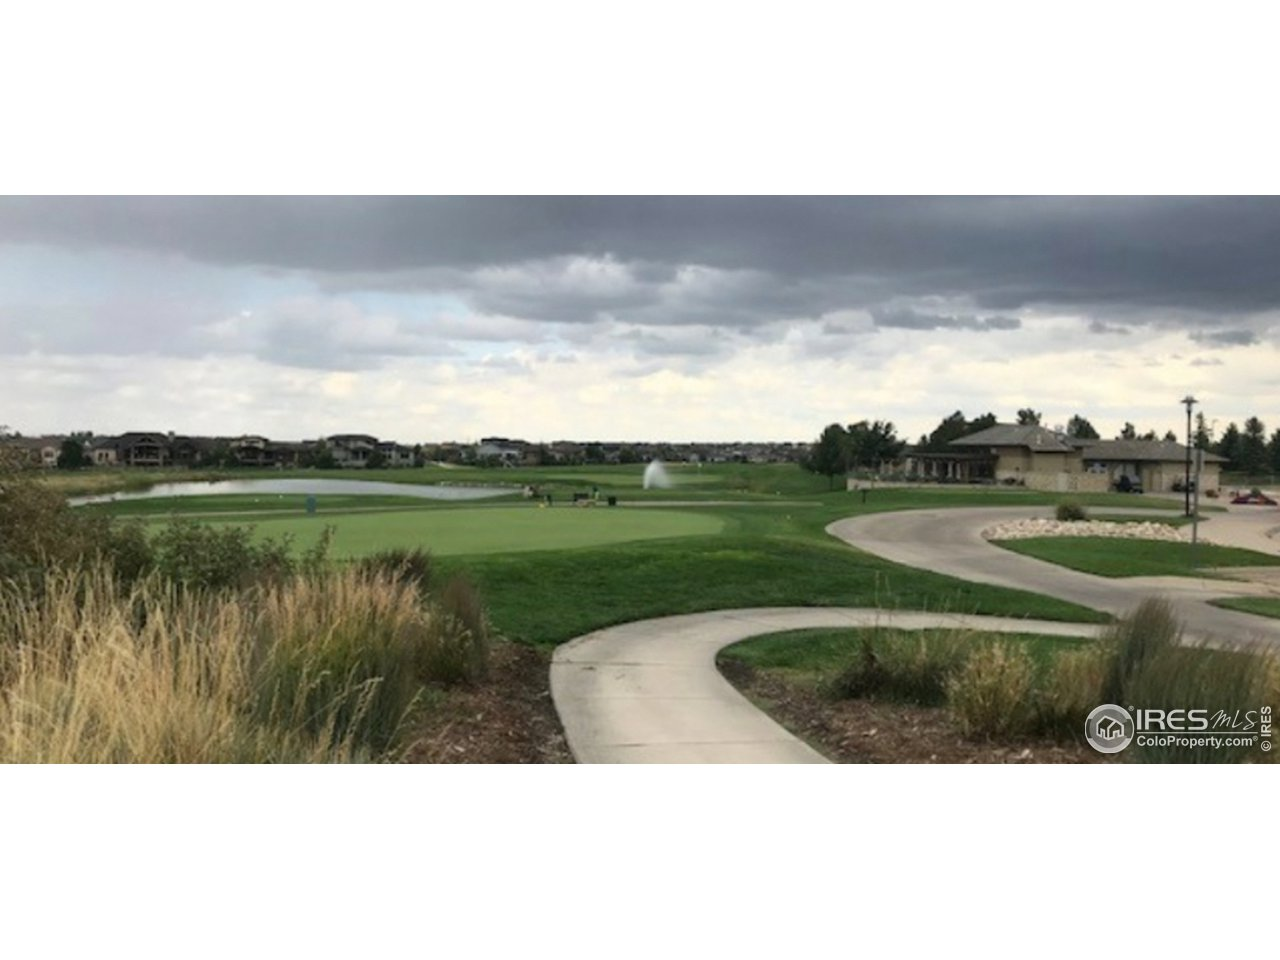 Enjoy your best life at Portofino Flats on Highland Meadows Golf Course! Featuring world class golf and clubhouse featuring music & dining!